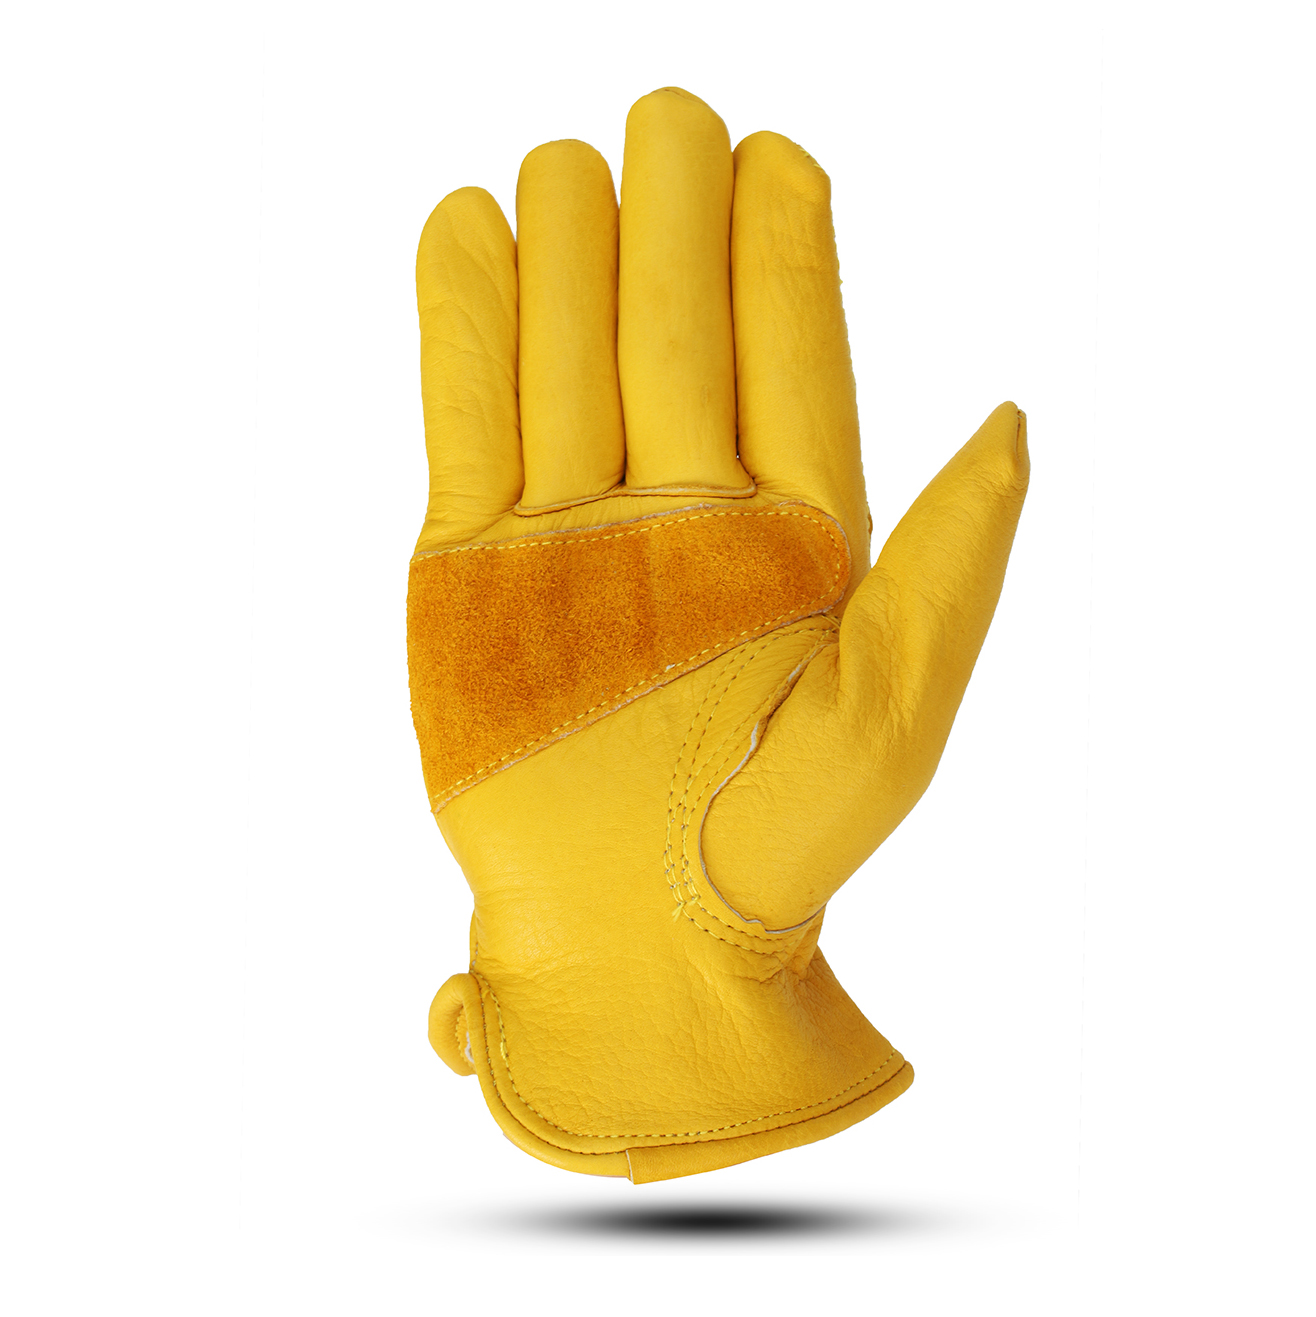 Insulated Grain Cowhide Leather Skid Resistance Gloves Winter Work Motor Vehicle